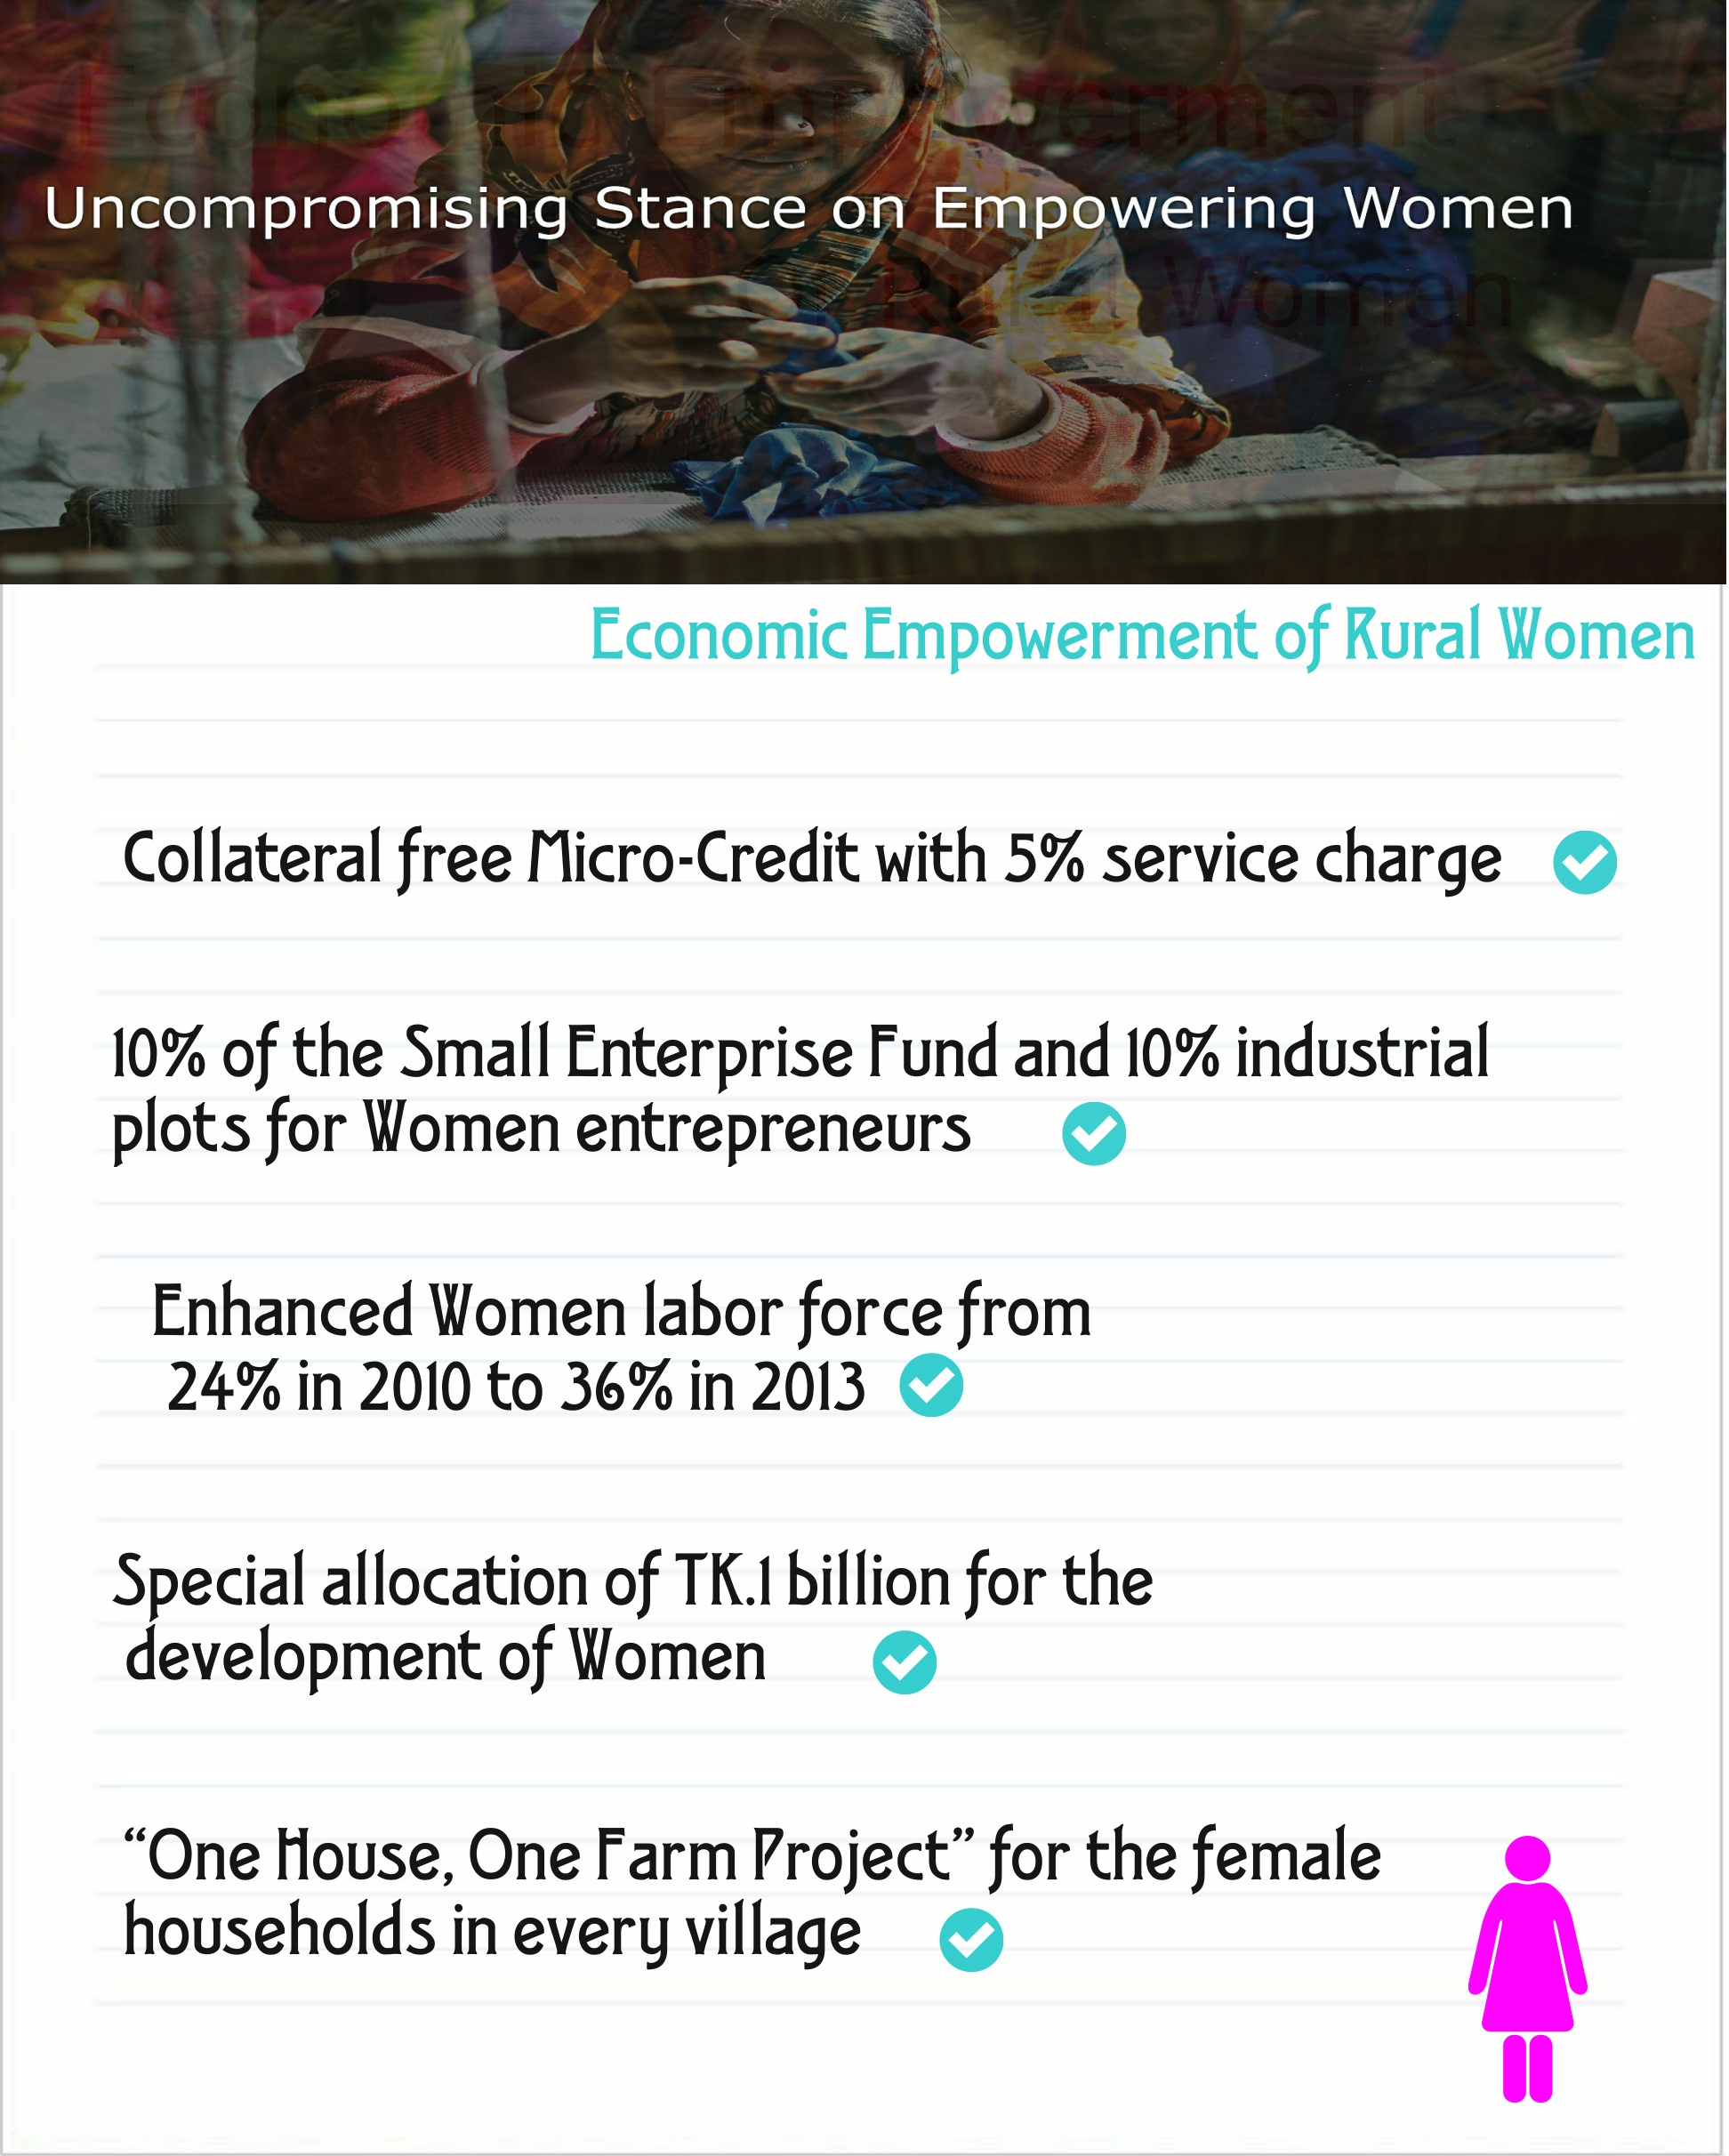 essay on empowerment of women modernization essay future of  development of women empowerment in cri for the economic empowerment of rural women collateral micro credit